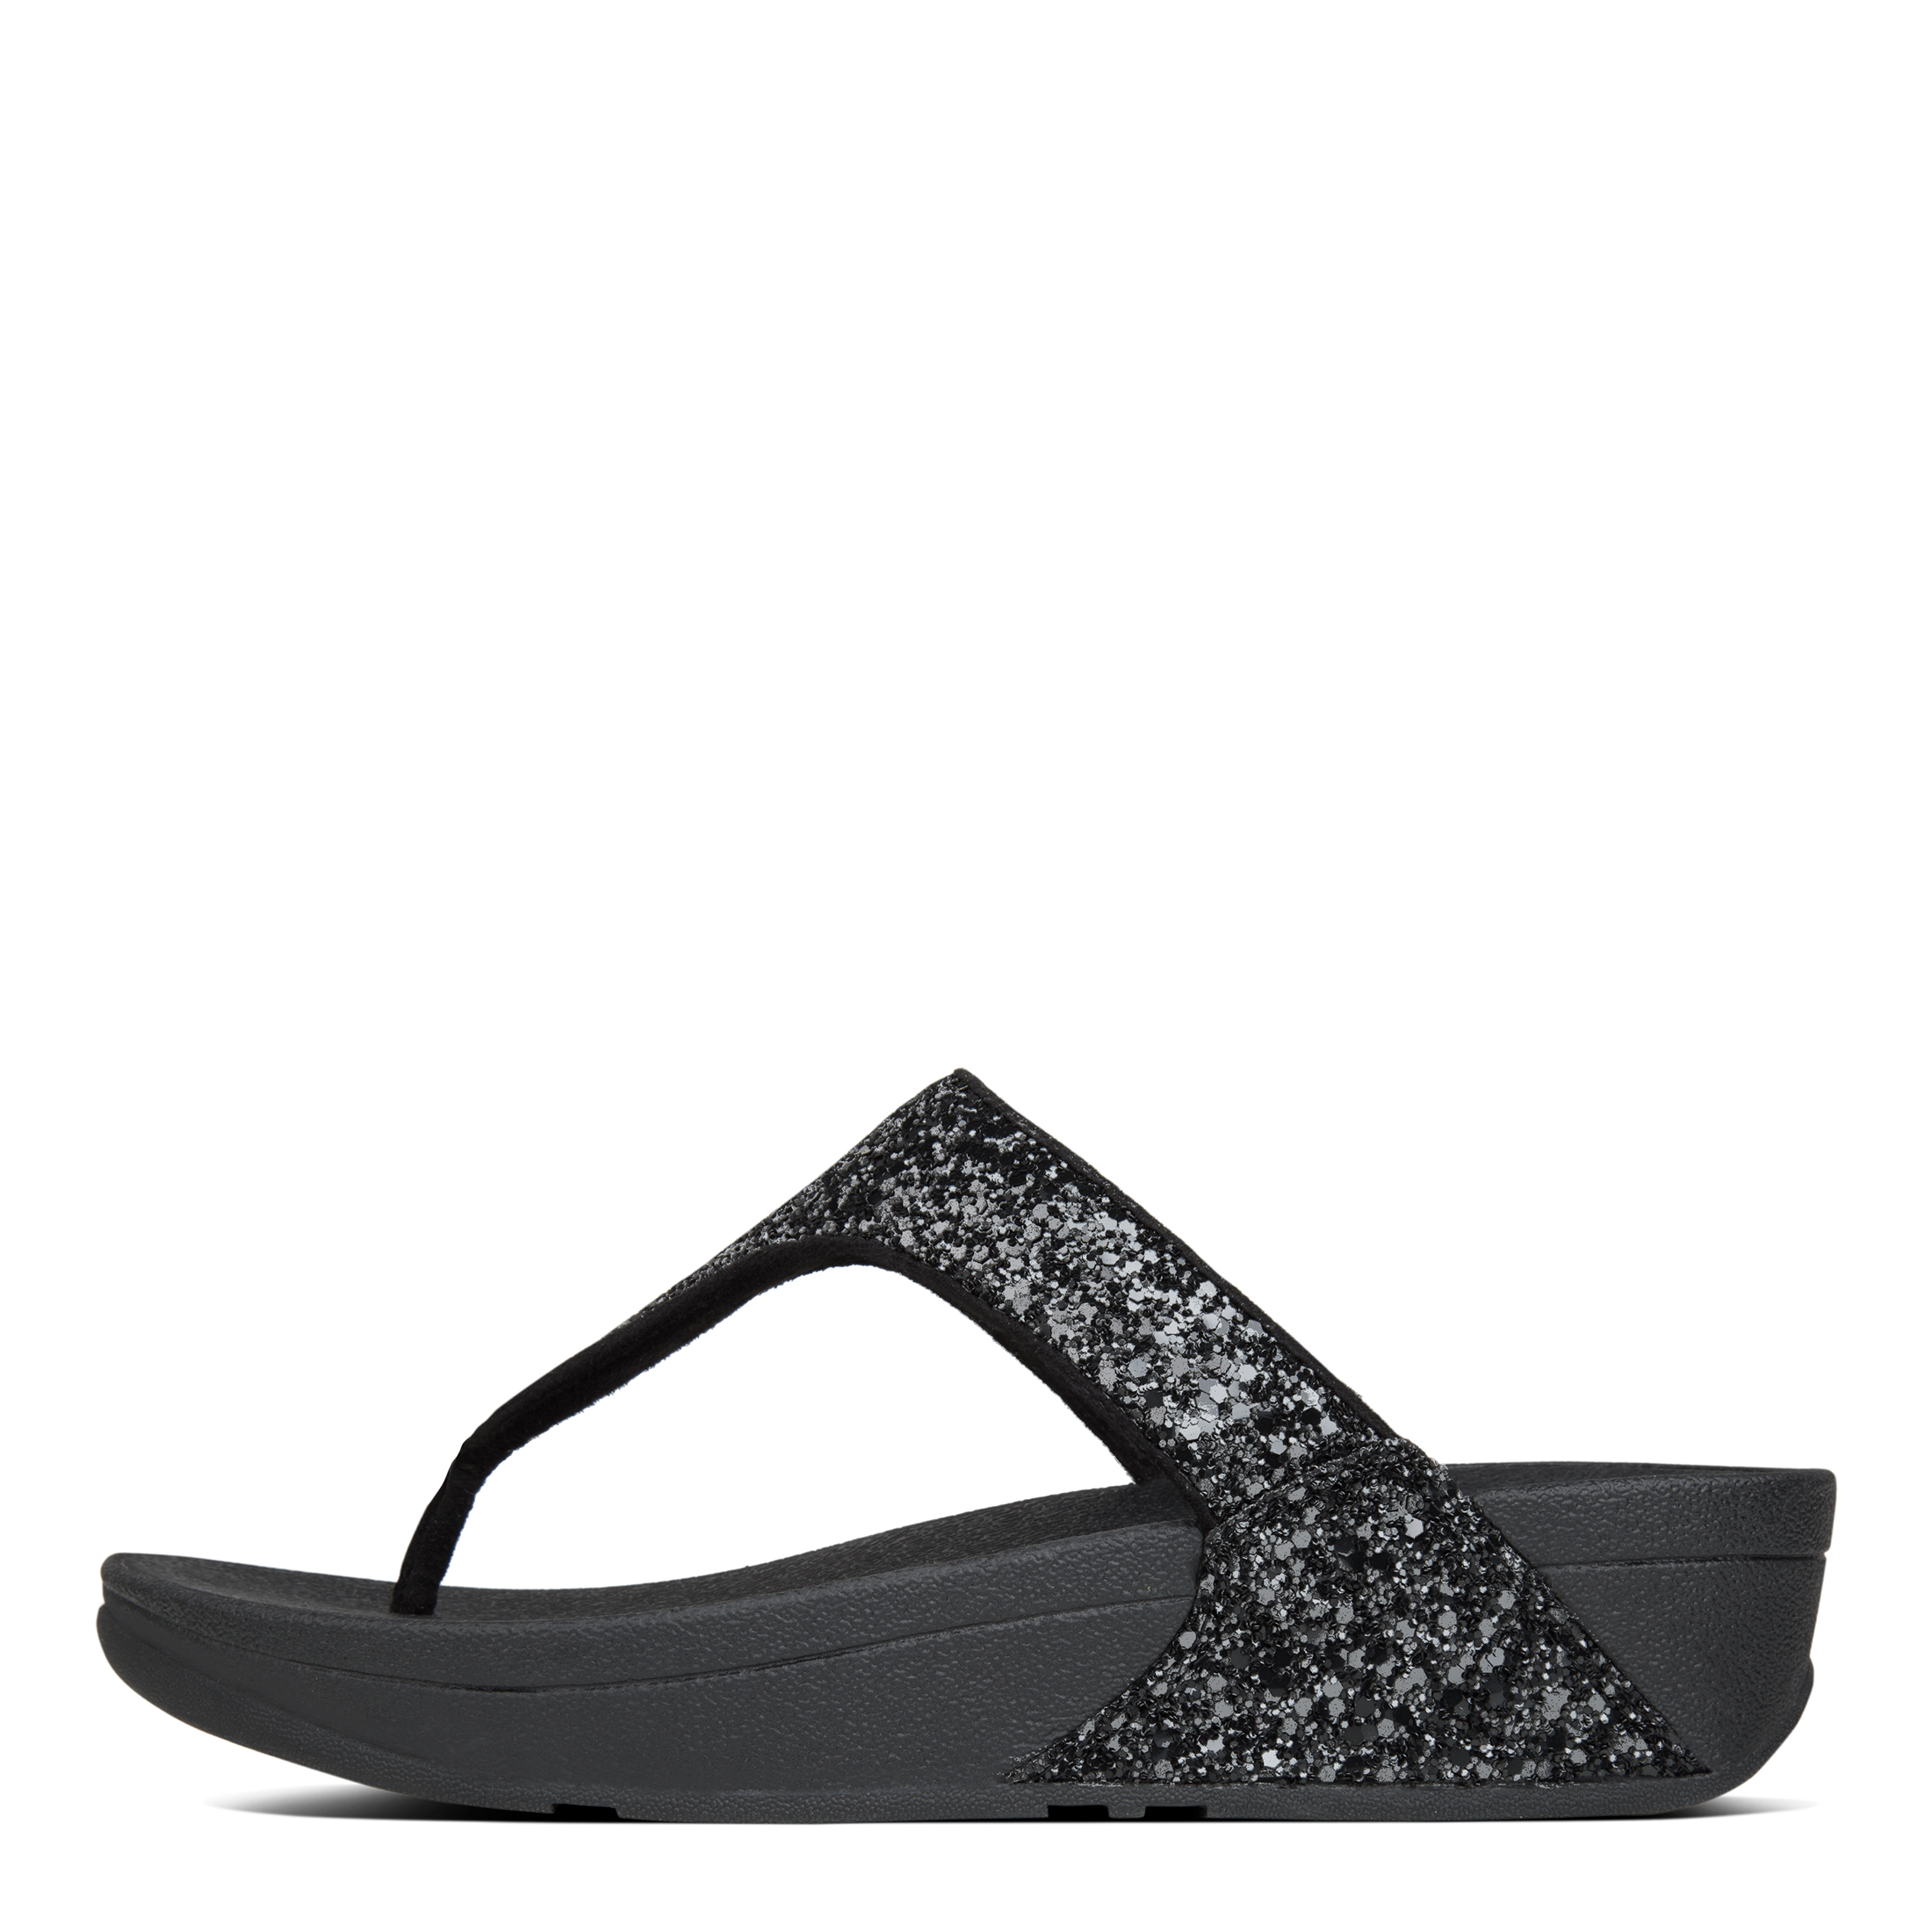 fb8379e2168 Womens FitFlop Glitterball Toe-post Sandals Black UK 4